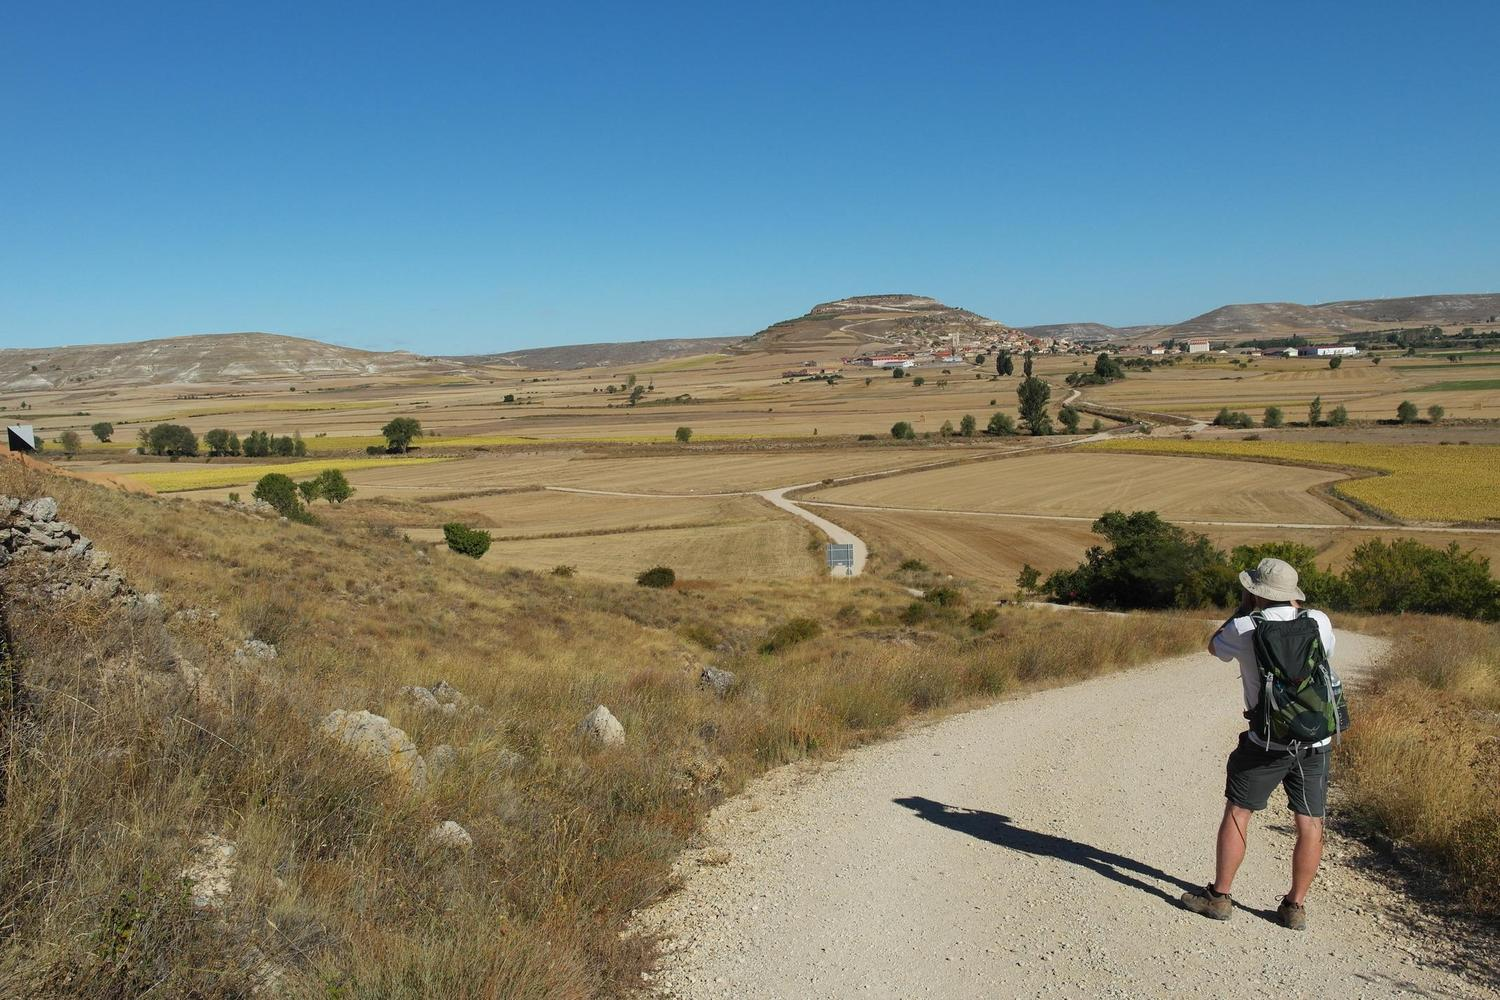 Looking out across the Castillian plains, Camino de Santiago